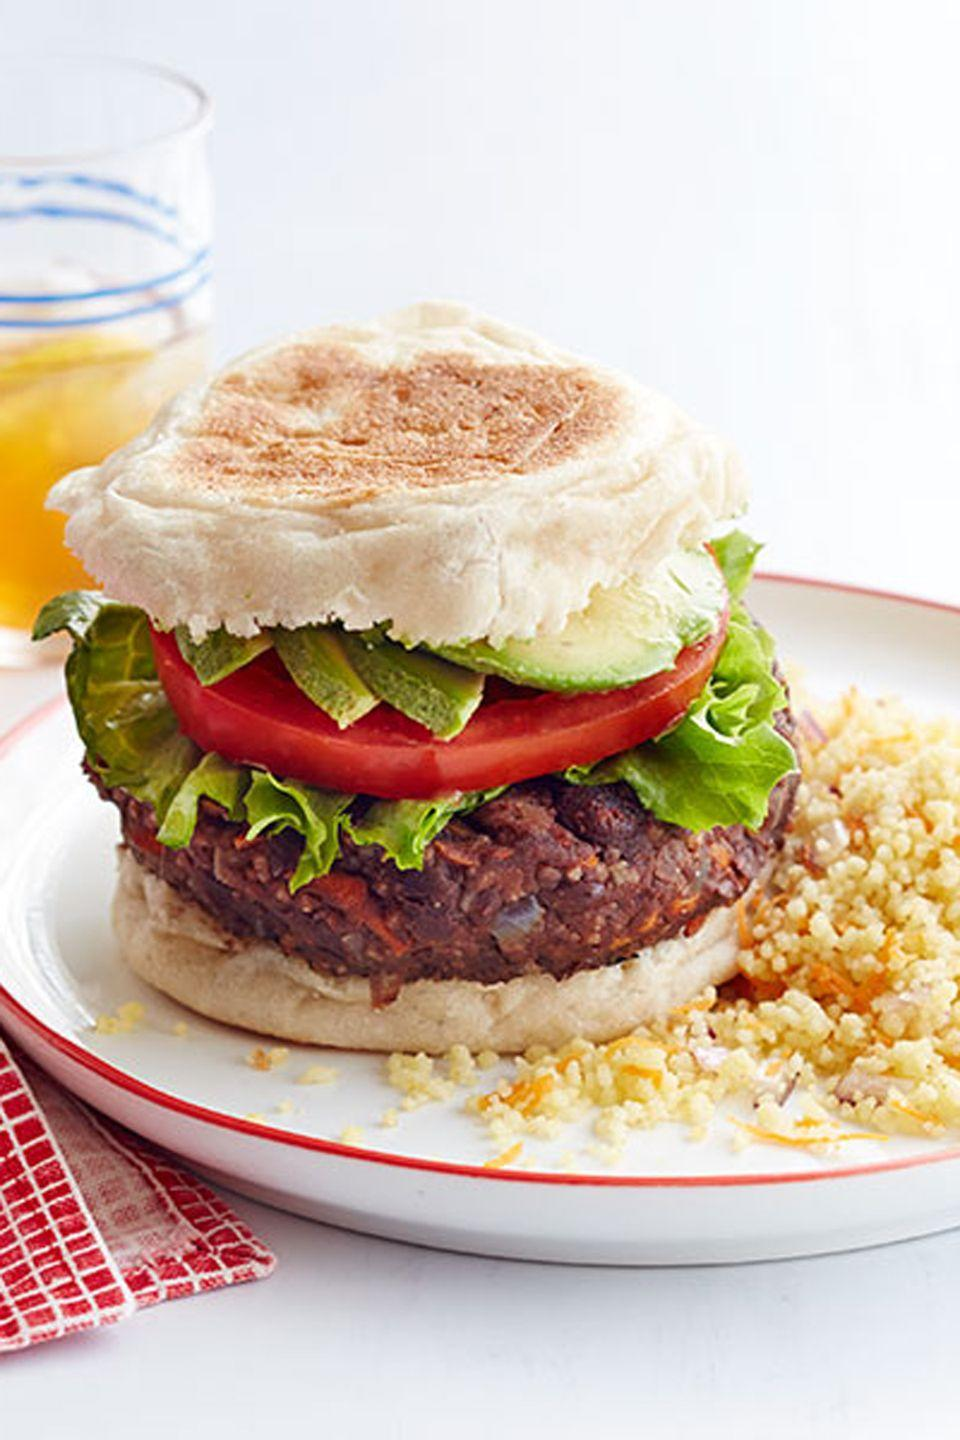 "This hearty bean patty serves as the perfect base for your favorite burger toppings. <a href=""https://www.countryliving.com/food-drinks/recipes/a34824/black-bean-veggie-burger-couscous-recipe-wdy0714/"" rel=""nofollow noopener"" target=""_blank"" data-ylk=""slk:Get the recipe"" class=""link rapid-noclick-resp""><strong>Get the recipe</strong></a><strong>.</strong> <a href=""https://www.amazon.com/T-fal-Specialty-Nonstick-Dishwasher-Cookware/dp/B000EM9PTQ?tag=syn-yahoo-20&ascsubtag=%5Bartid%7C10050.g.32934702%5Bsrc%7Cyahoo-us"" class=""link rapid-noclick-resp"" rel=""nofollow noopener"" target=""_blank"" data-ylk=""slk:SHOP SAUTE PANS""><strong>SHOP SAUTE PANS</strong></a><br>"